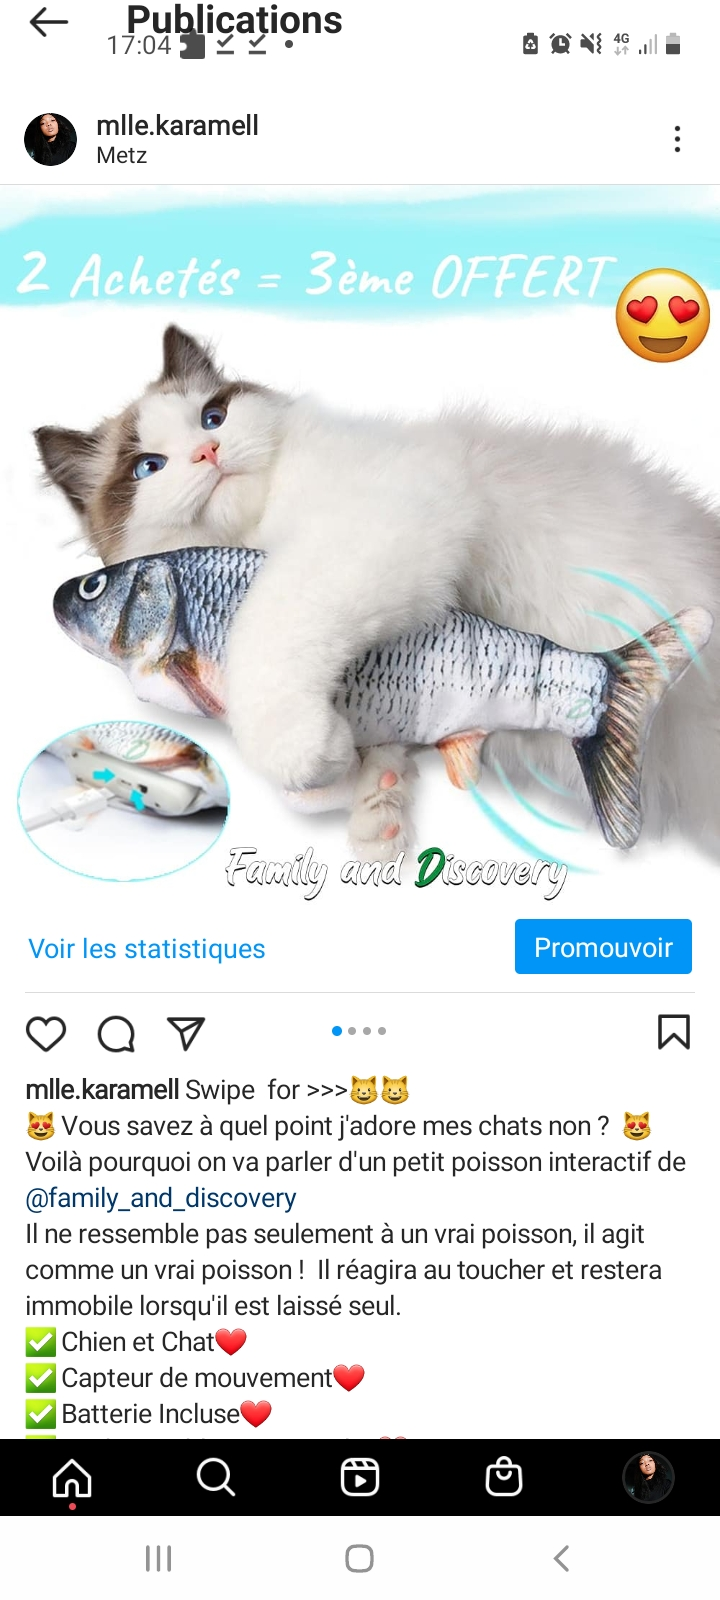 Promotion du poisson interactif Familly and Discovery